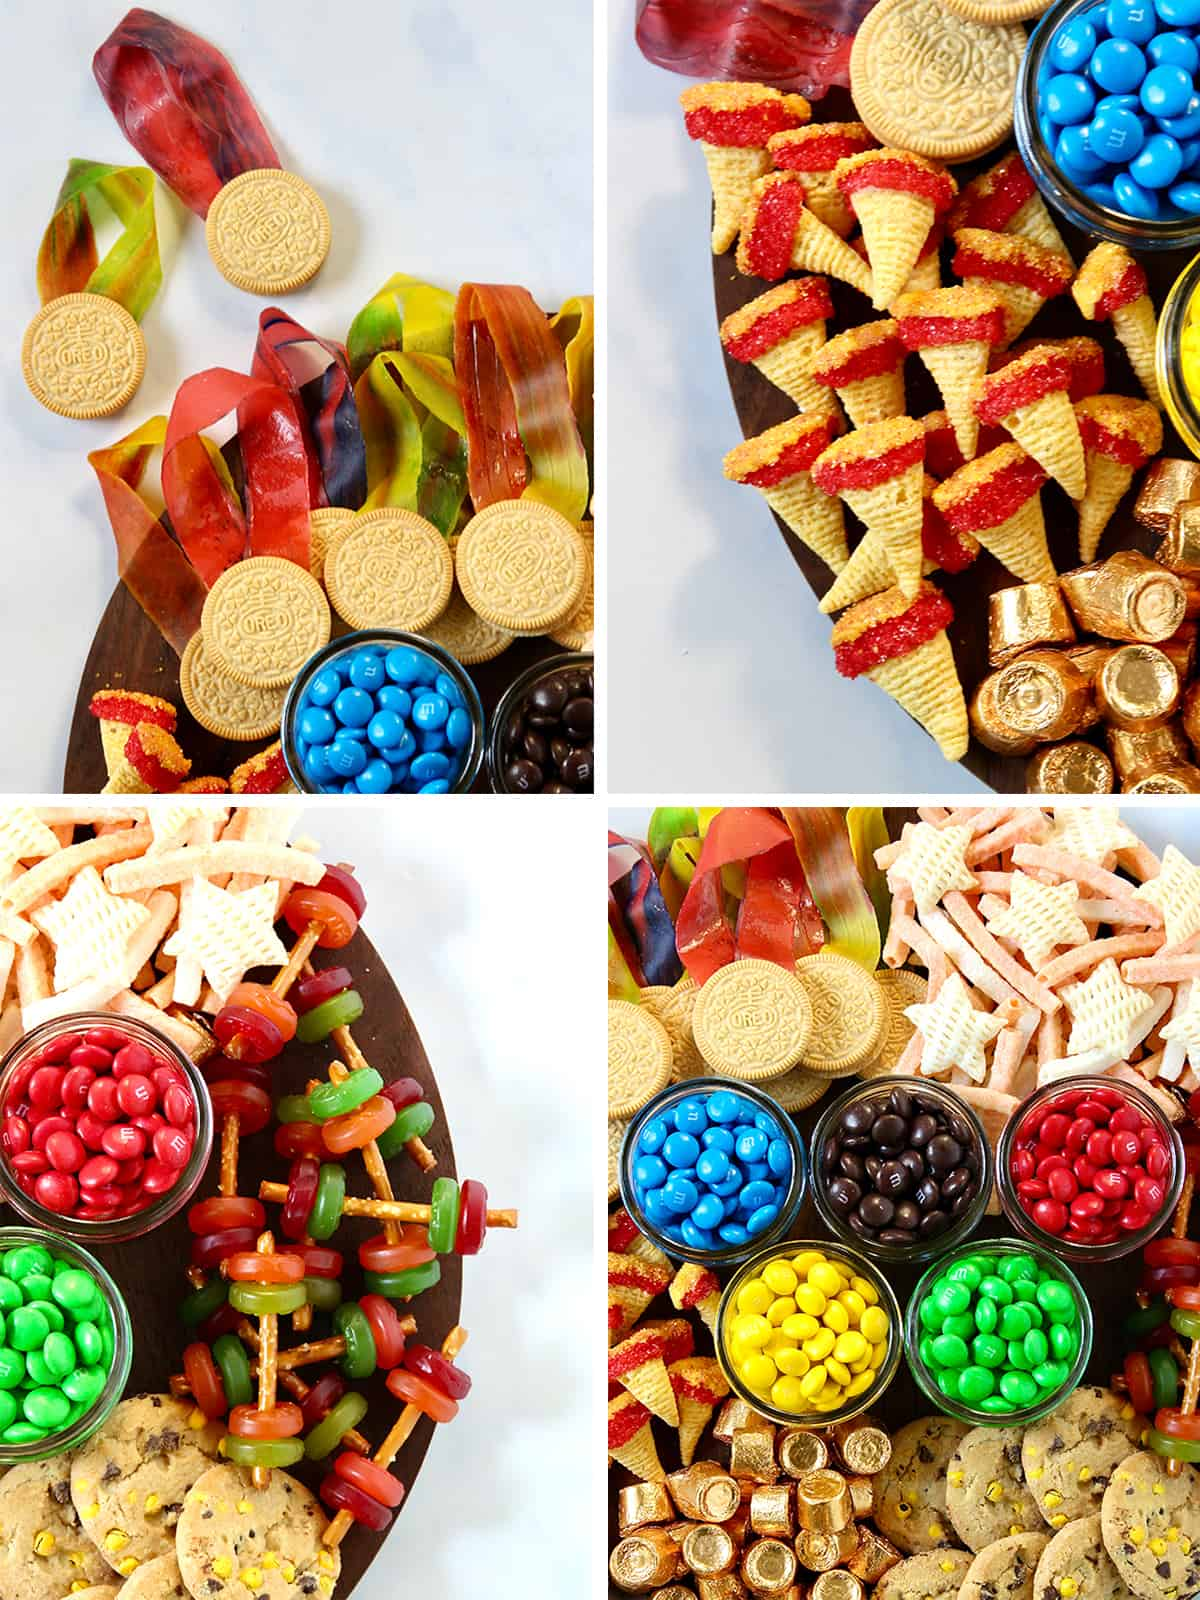 Steps to make the Olympics Snack Board by The BakerMama